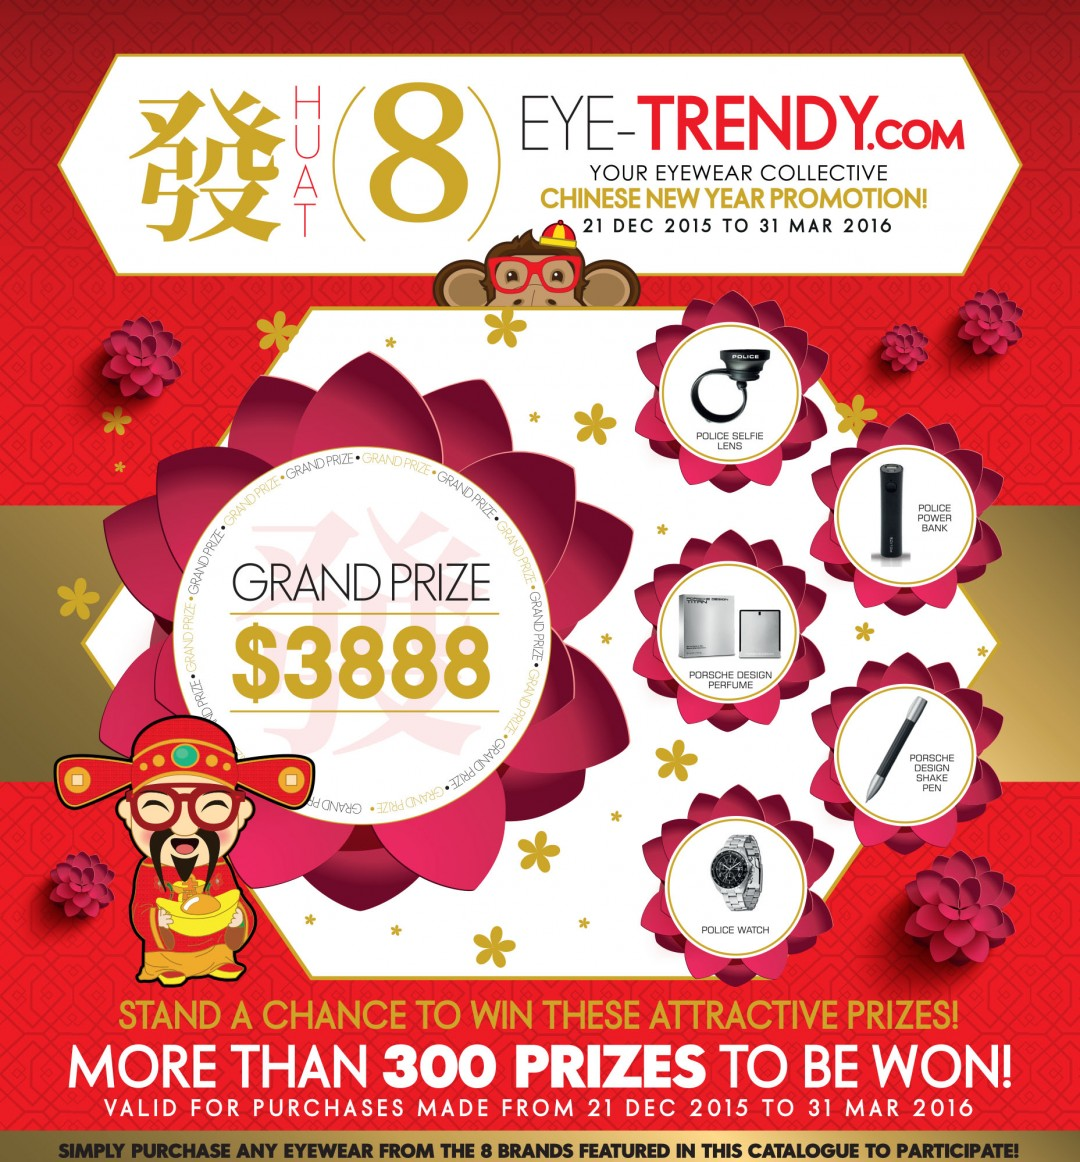 [2015_10_05]-EYE_TRENDY_CNY_CAMPAIGN_A5_CARD-FA